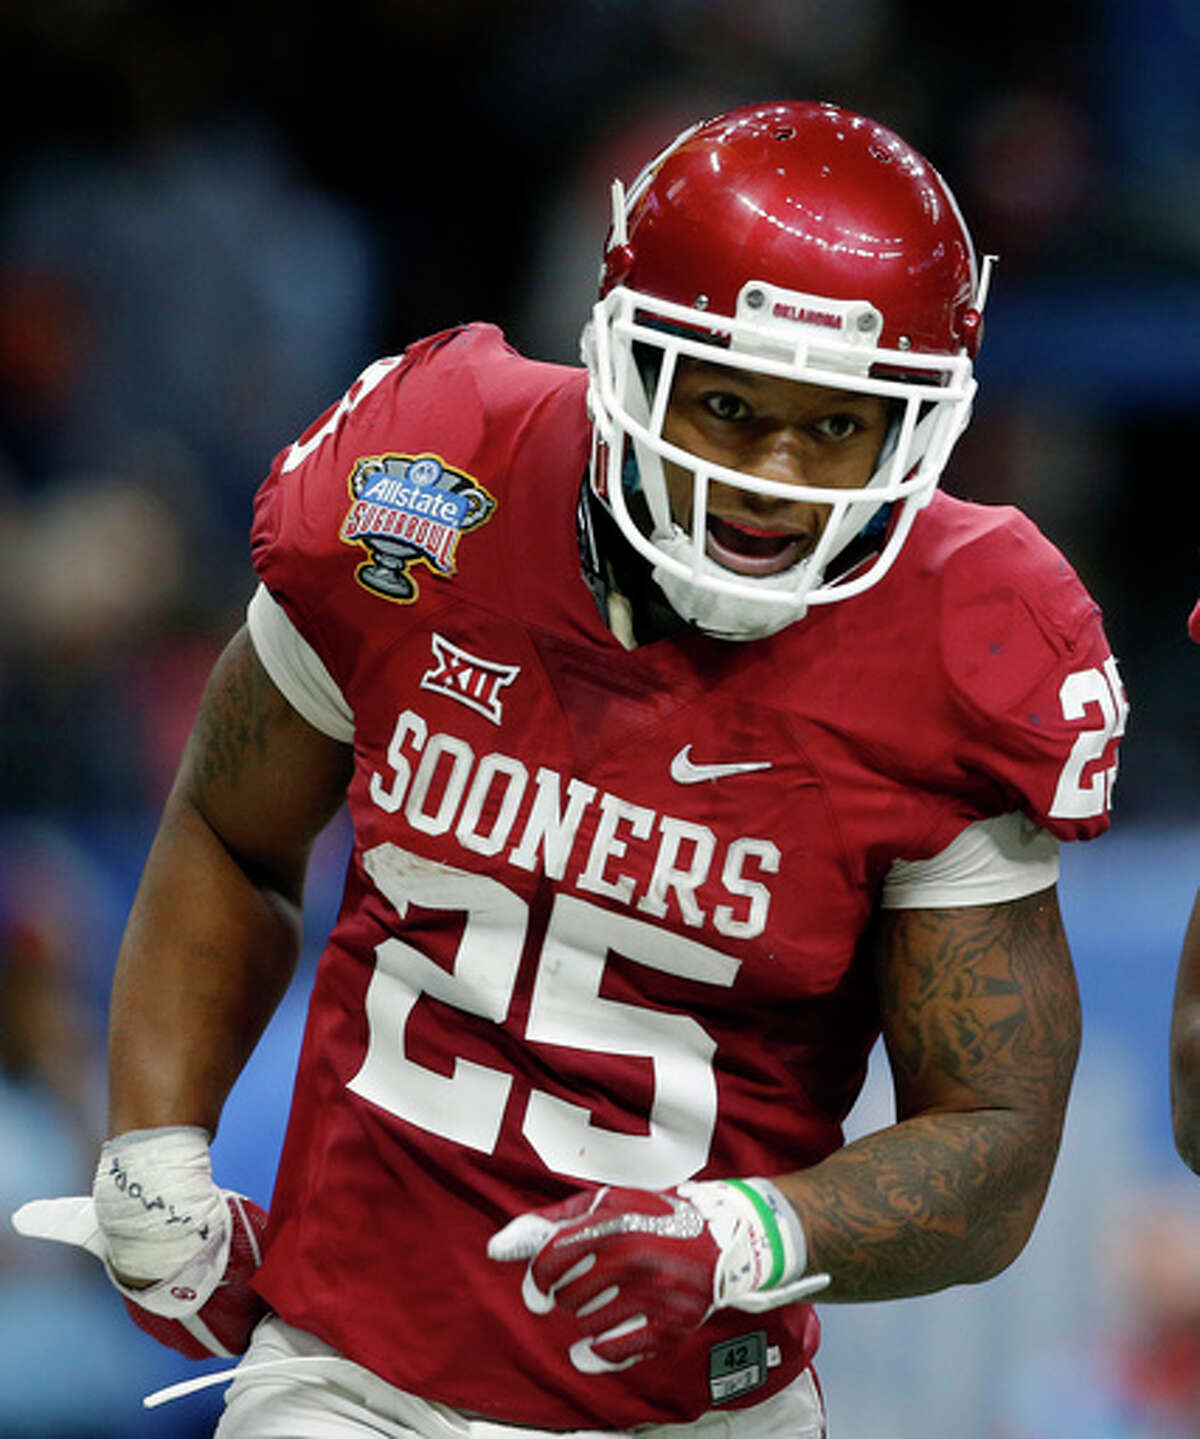 FILE - In this Jan. 2, 2017, file photo, Oklahoma running back Joe Mixon (25) celebrates his touchdown against Auburn in the first half of the Sugar Bowl NCAA college football game in New Orleans. Fans in the NFL draft theater booed when Mixon, who was uninvited to the scouting combine because of a domestic assault incident from 2014, was announced as the Cincinnati Bengals' pick at No. 48 overall Friday, April 28, 2017. (AP Photo/Gerald Herbert, File) ORG XMIT: NY901